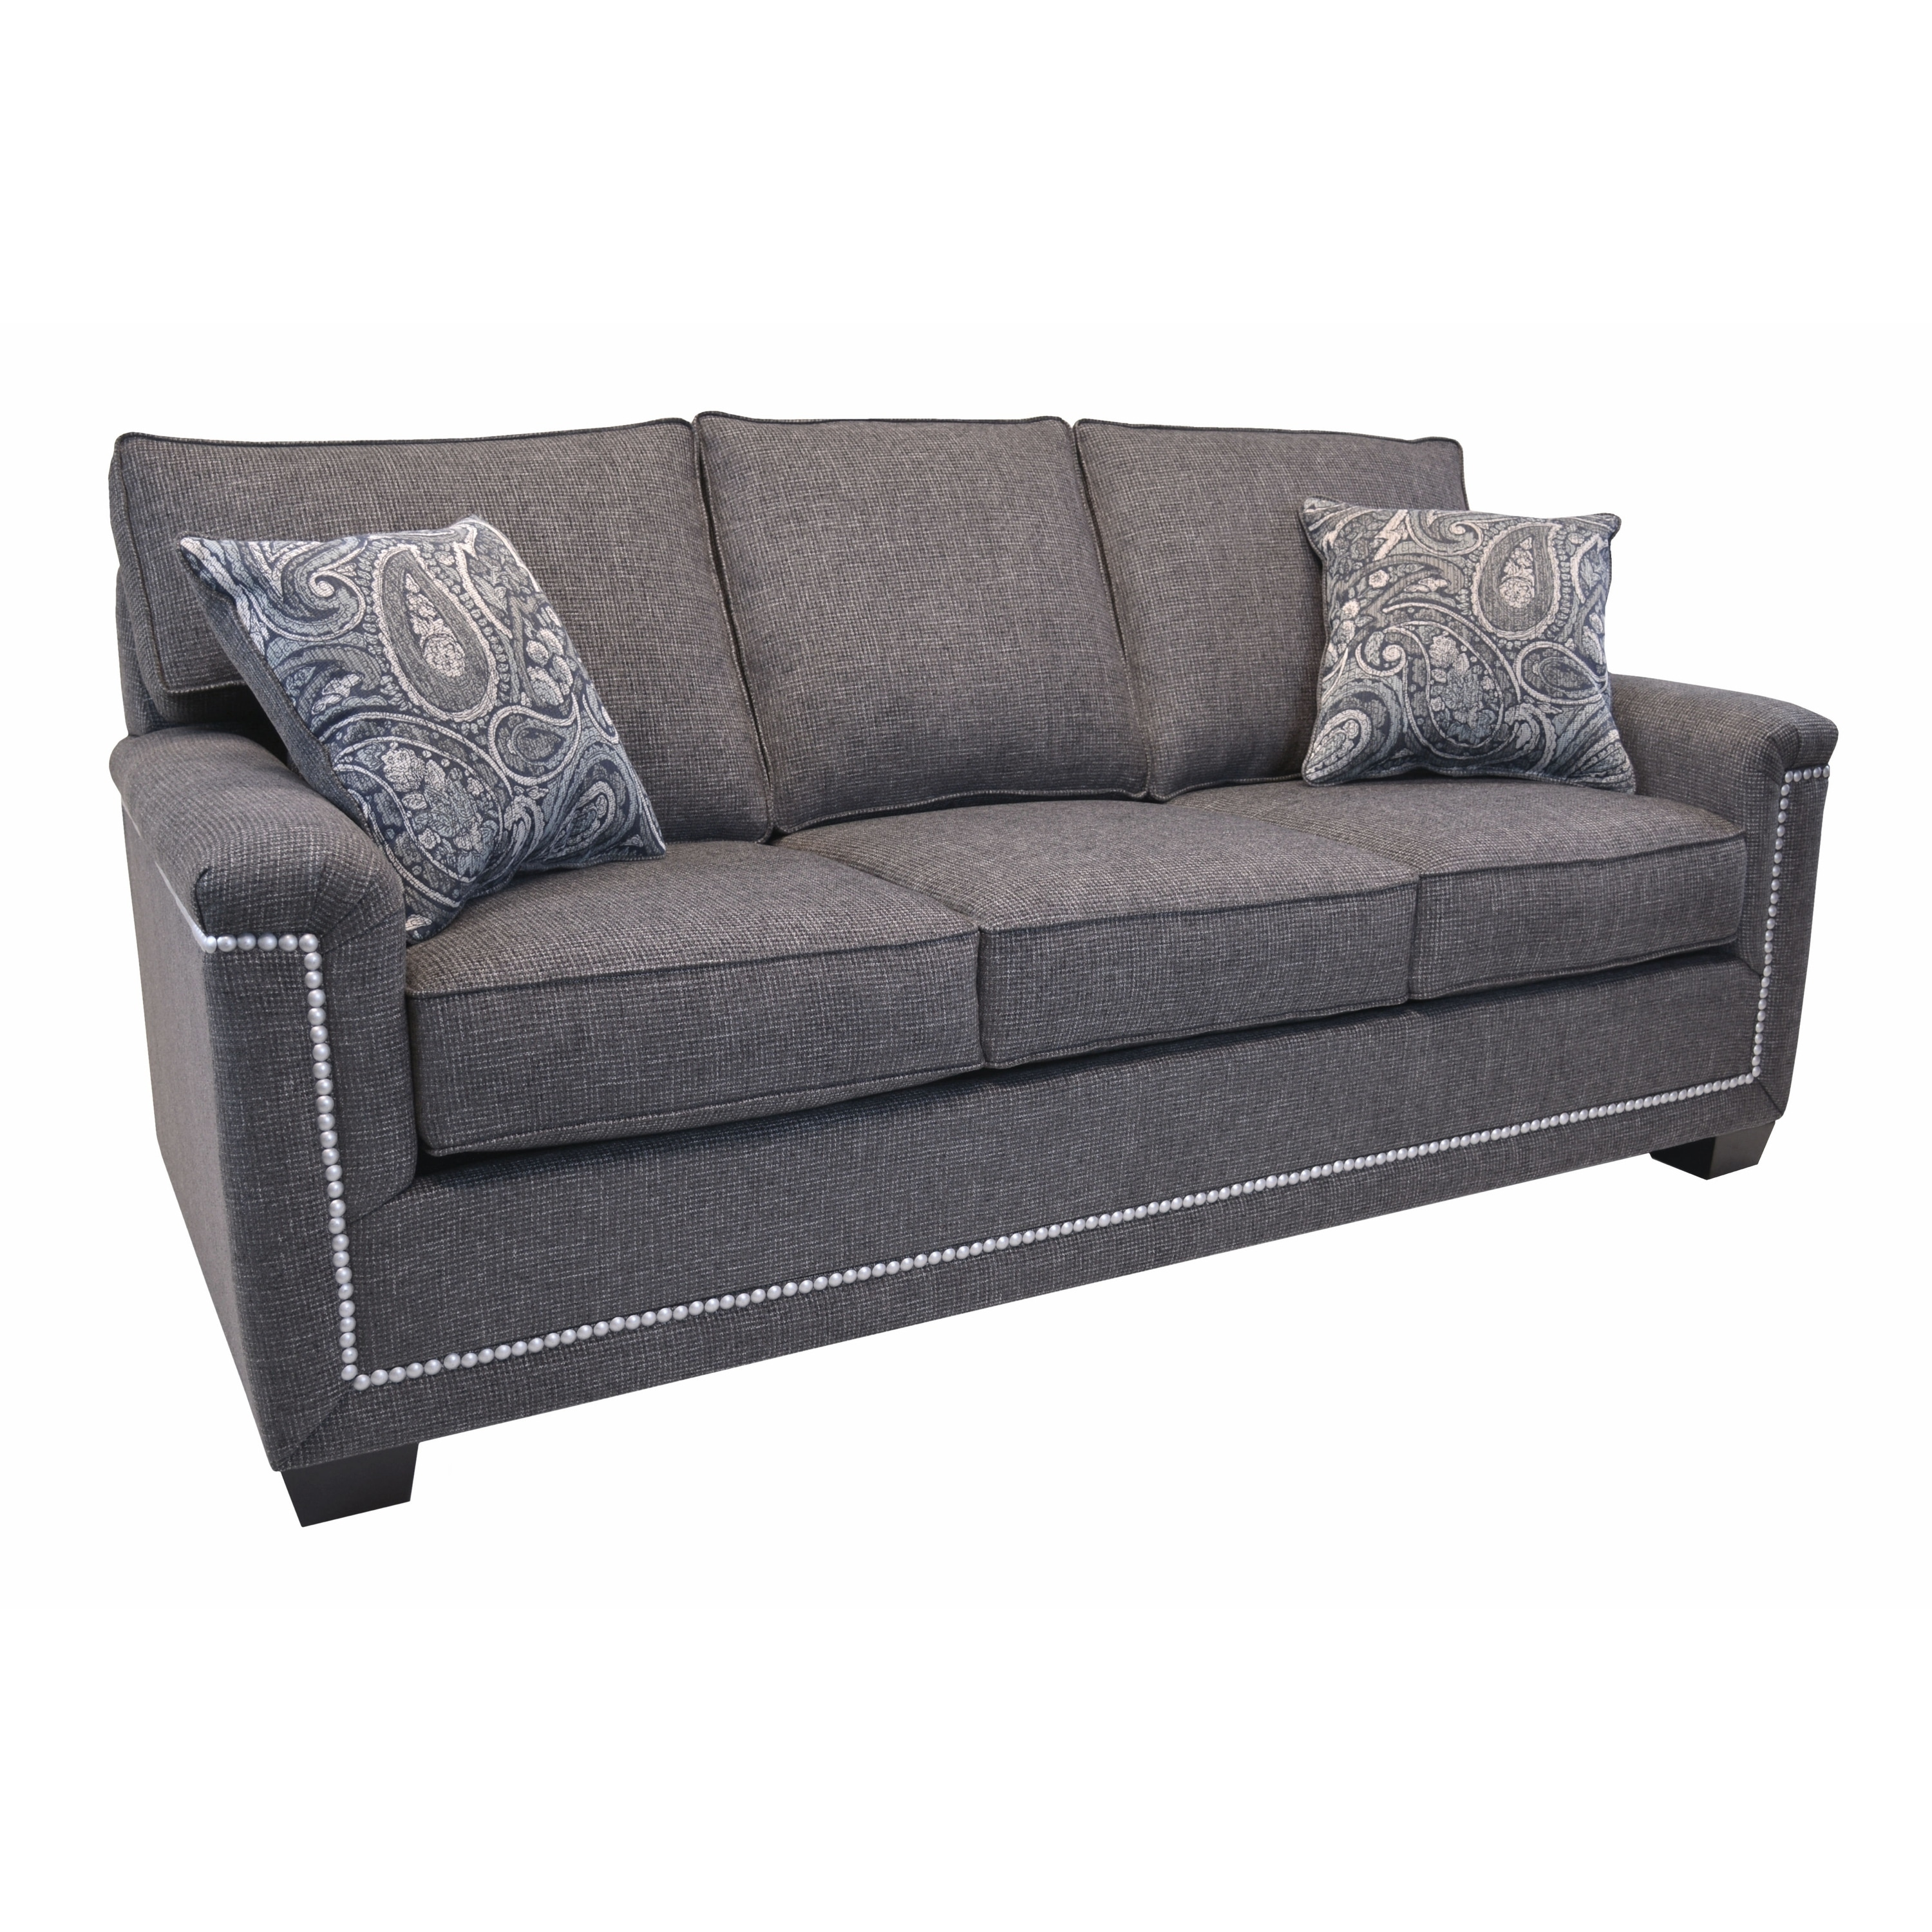 Marvelous Simone Grey Fabric Sofa With Nailhead Trim Forskolin Free Trial Chair Design Images Forskolin Free Trialorg